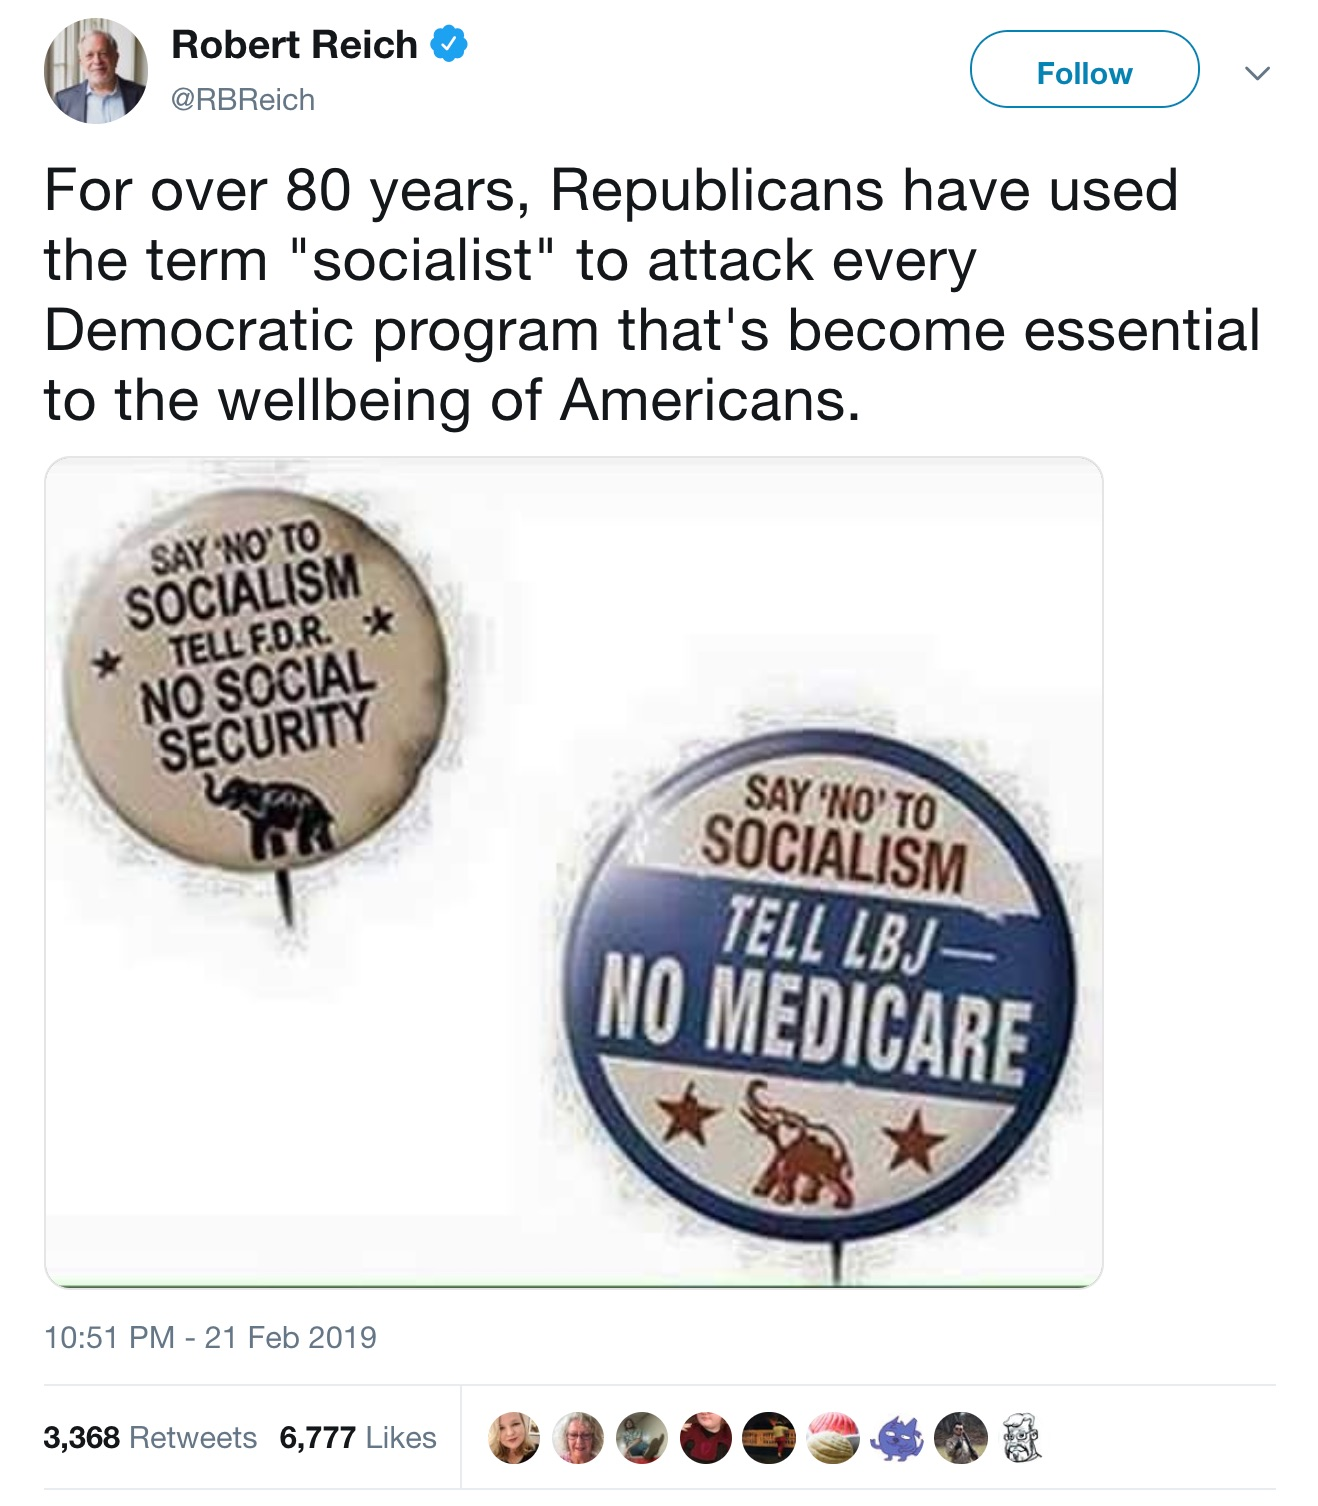 Robert_Reich_on_Twitter___For_over_80_years__Republicans_have_used_the_term__socialist__to_attack_every_Democratic_program_that_s_become_essential_to_the_wellbeing_of_Americans